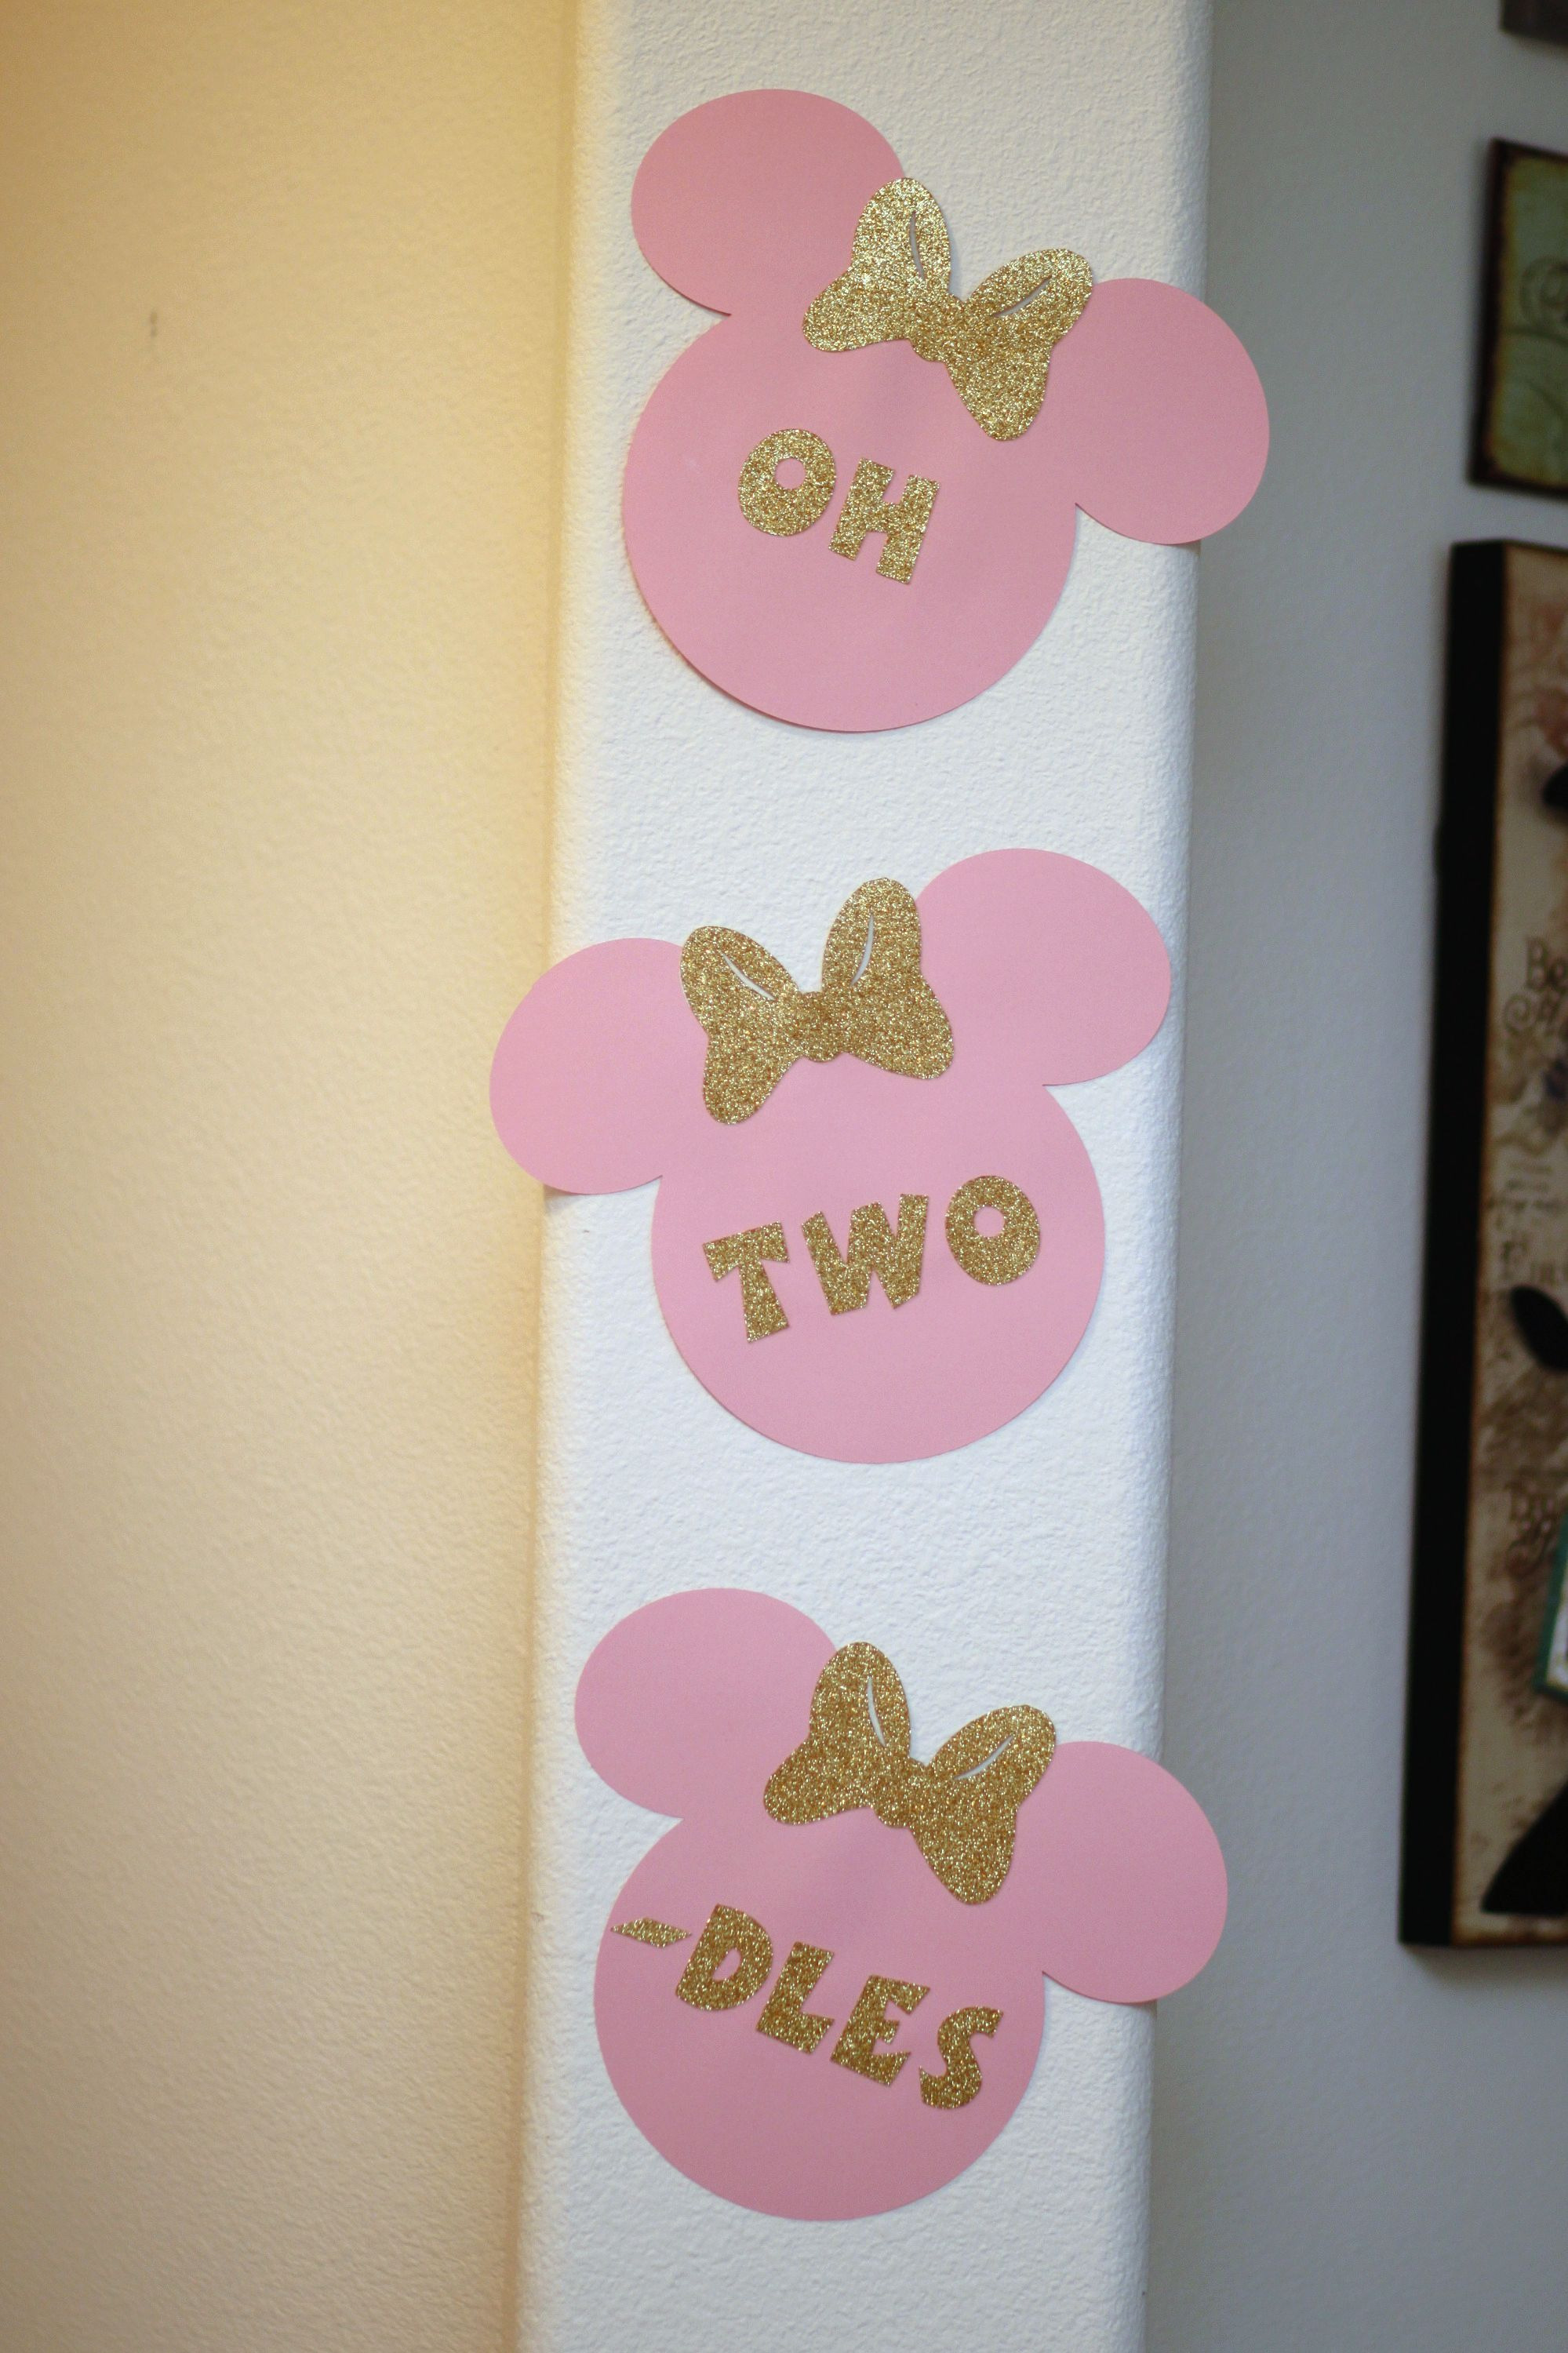 Oh, Two-dles decor